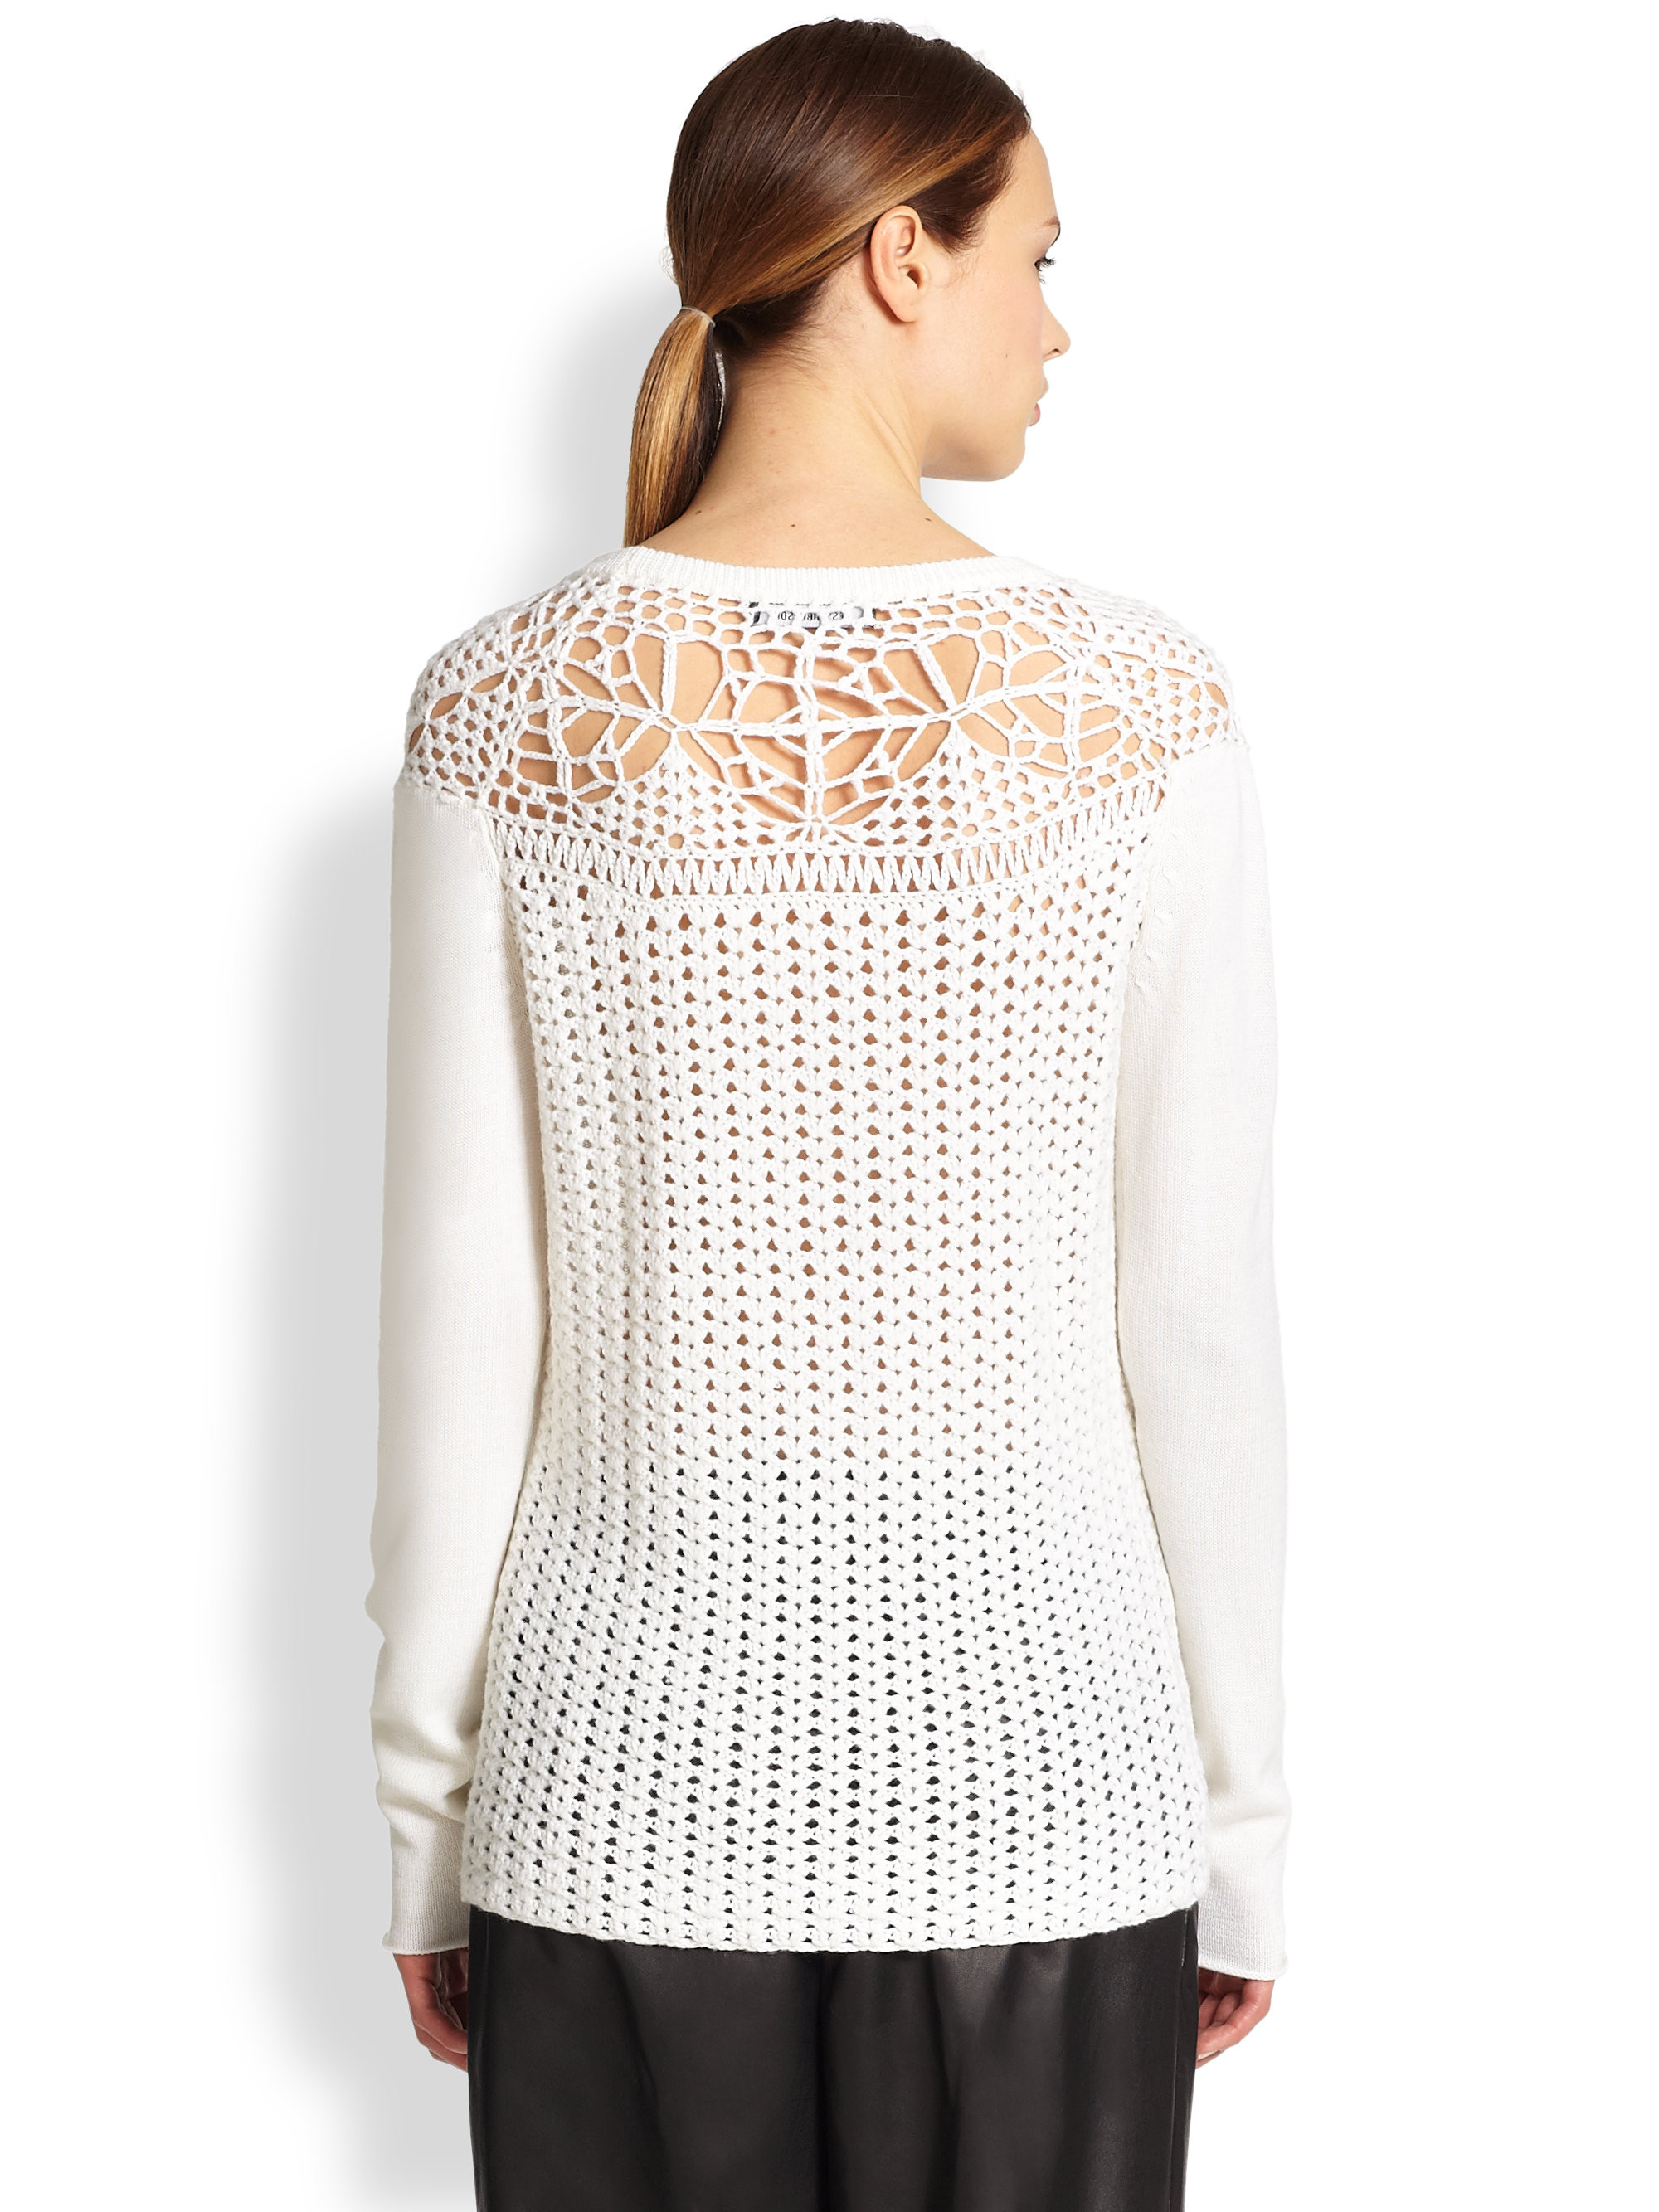 Elegant Tess Giberson Crochet Detail Sweater In White White Crochet Sweater Of Wonderful 44 Ideas White Crochet Sweater